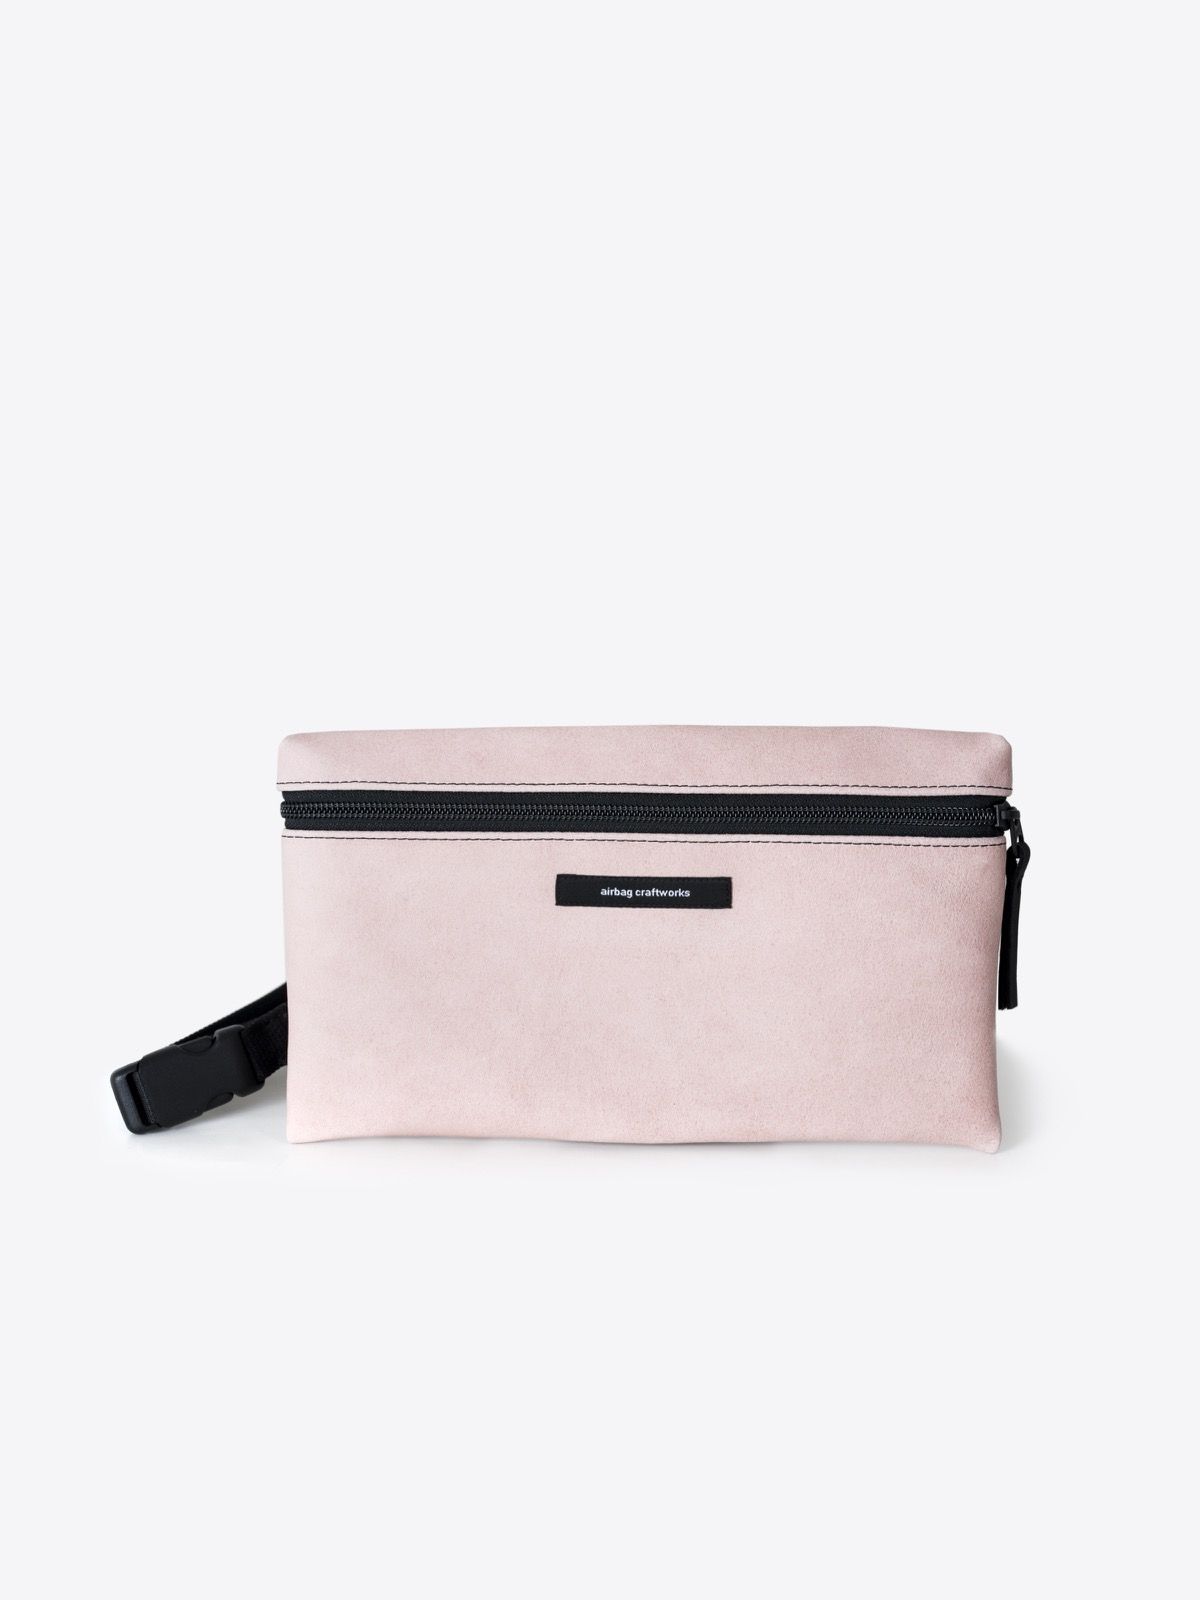 A2 dlx leather | pink